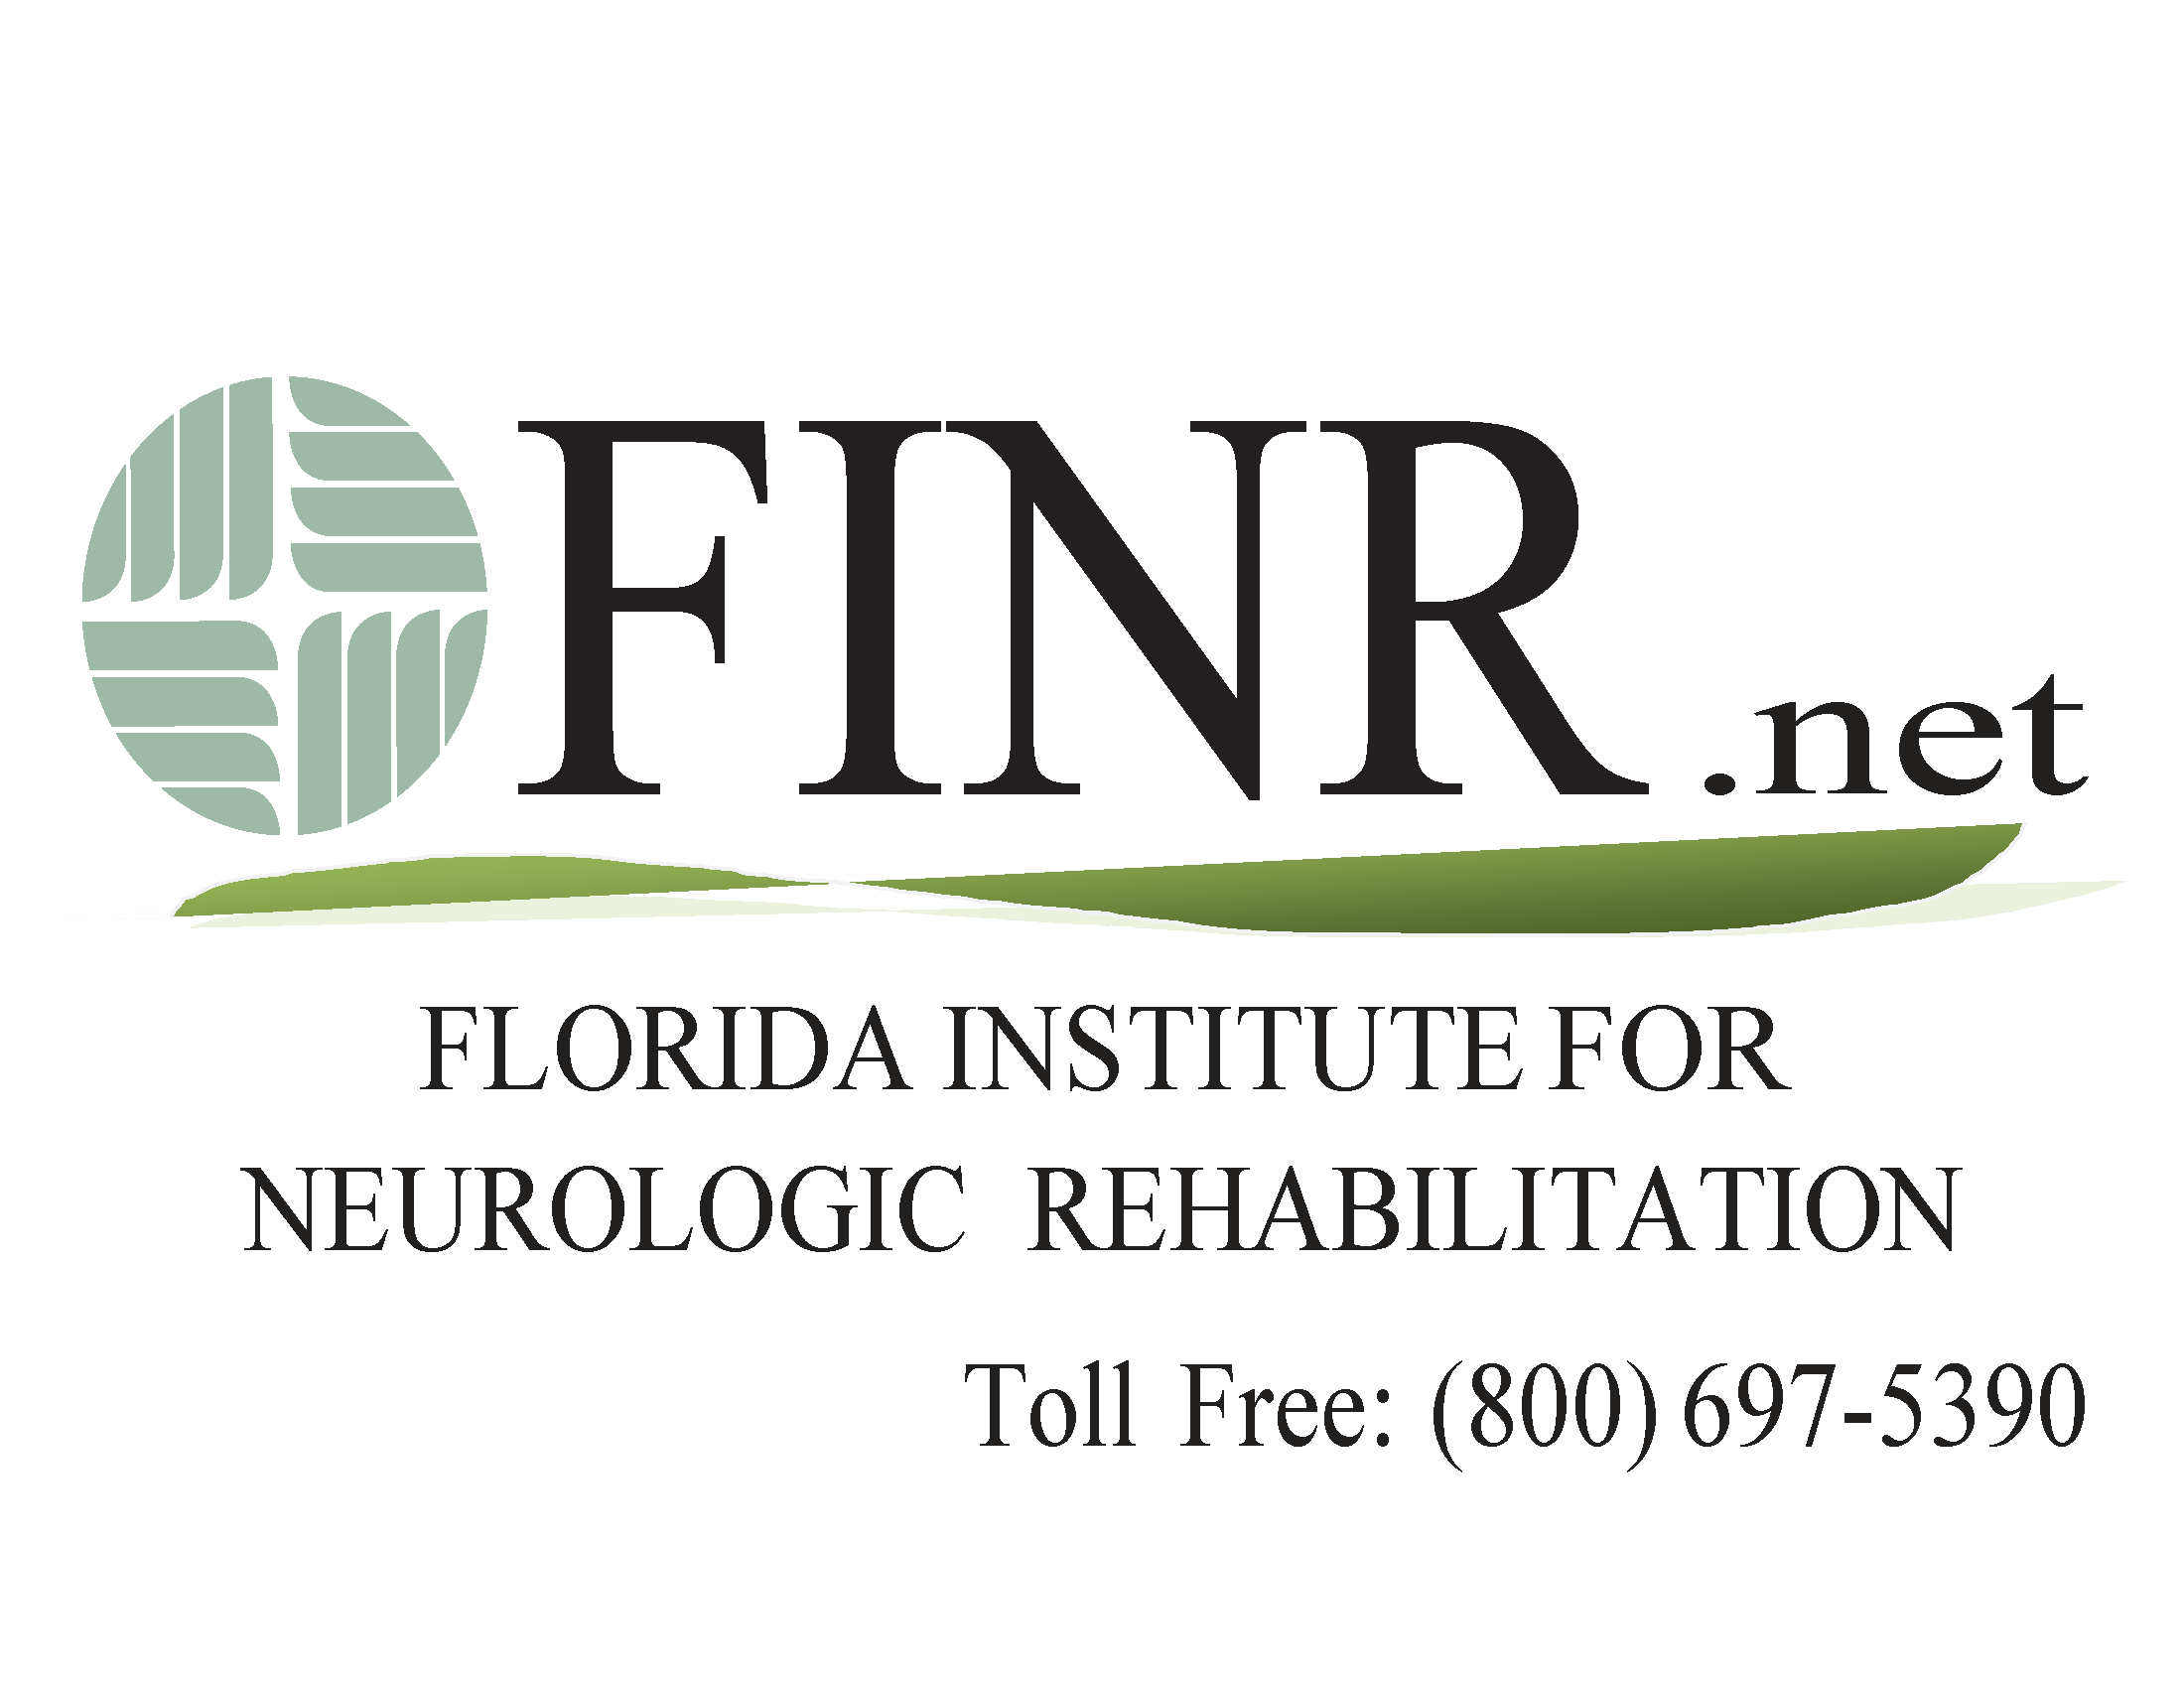 Florida Institute for Neurologic Rehabilitation